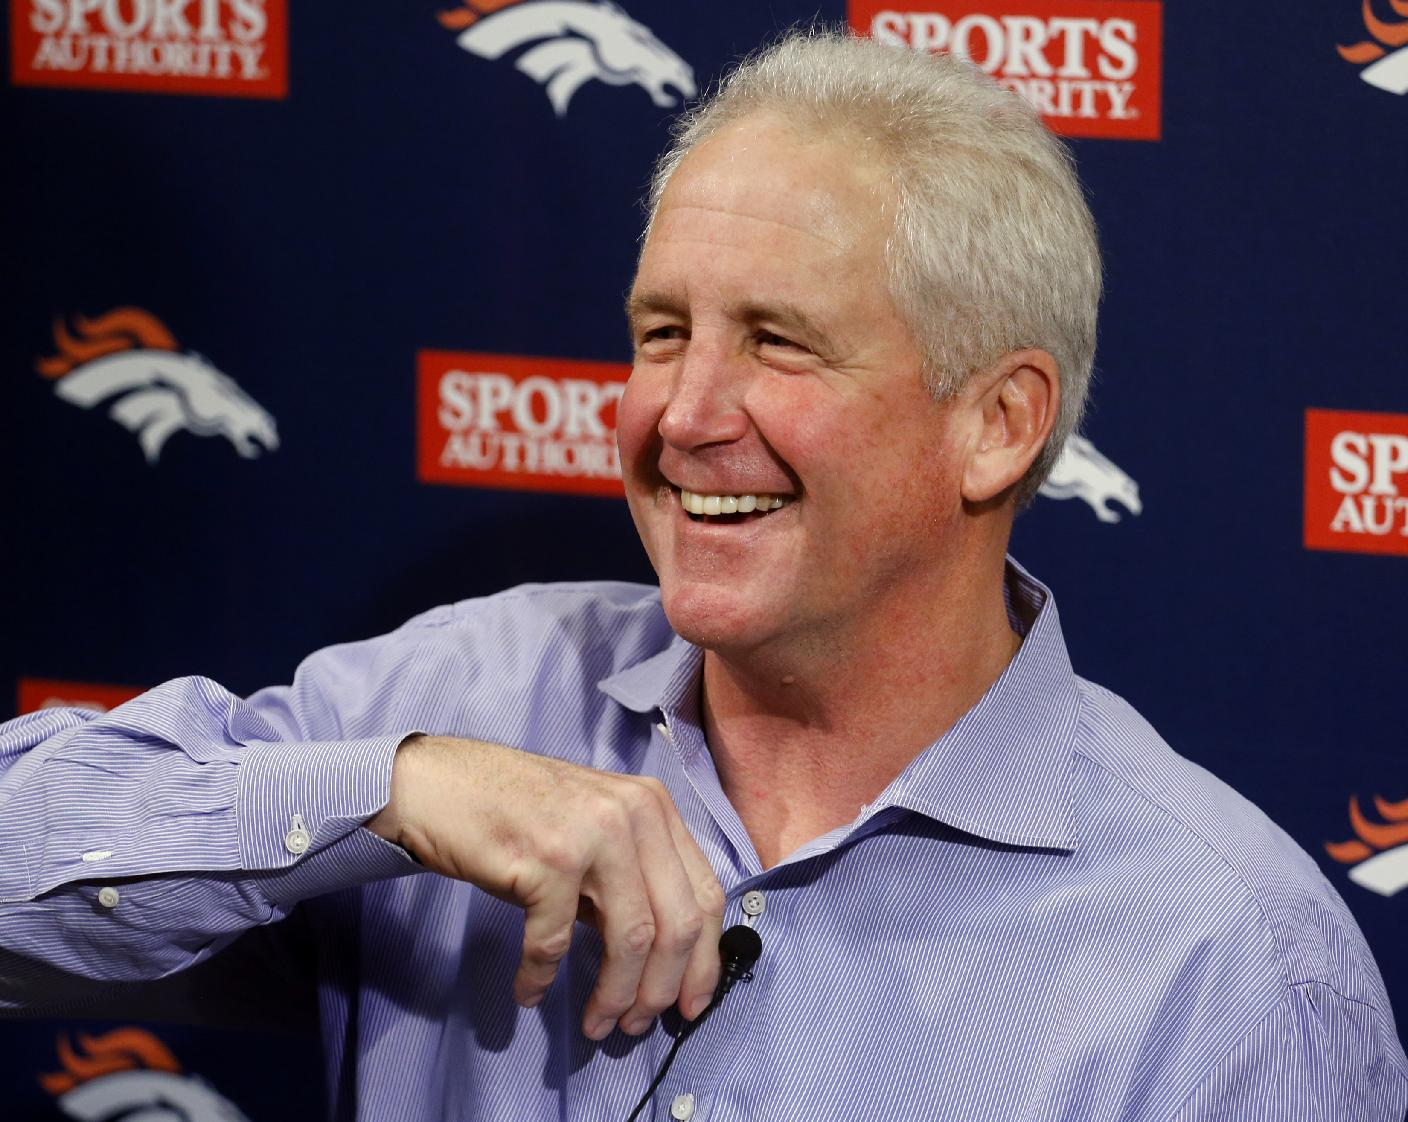 Denver Broncos head football coach John Fox smiles at the conclusion of a news conference at the NFL team's headquarters in Englewood, Colo.,  on Monday, Dec. 2, 2013. Fox returned to work on Monday for the first time since having heart surgery last month